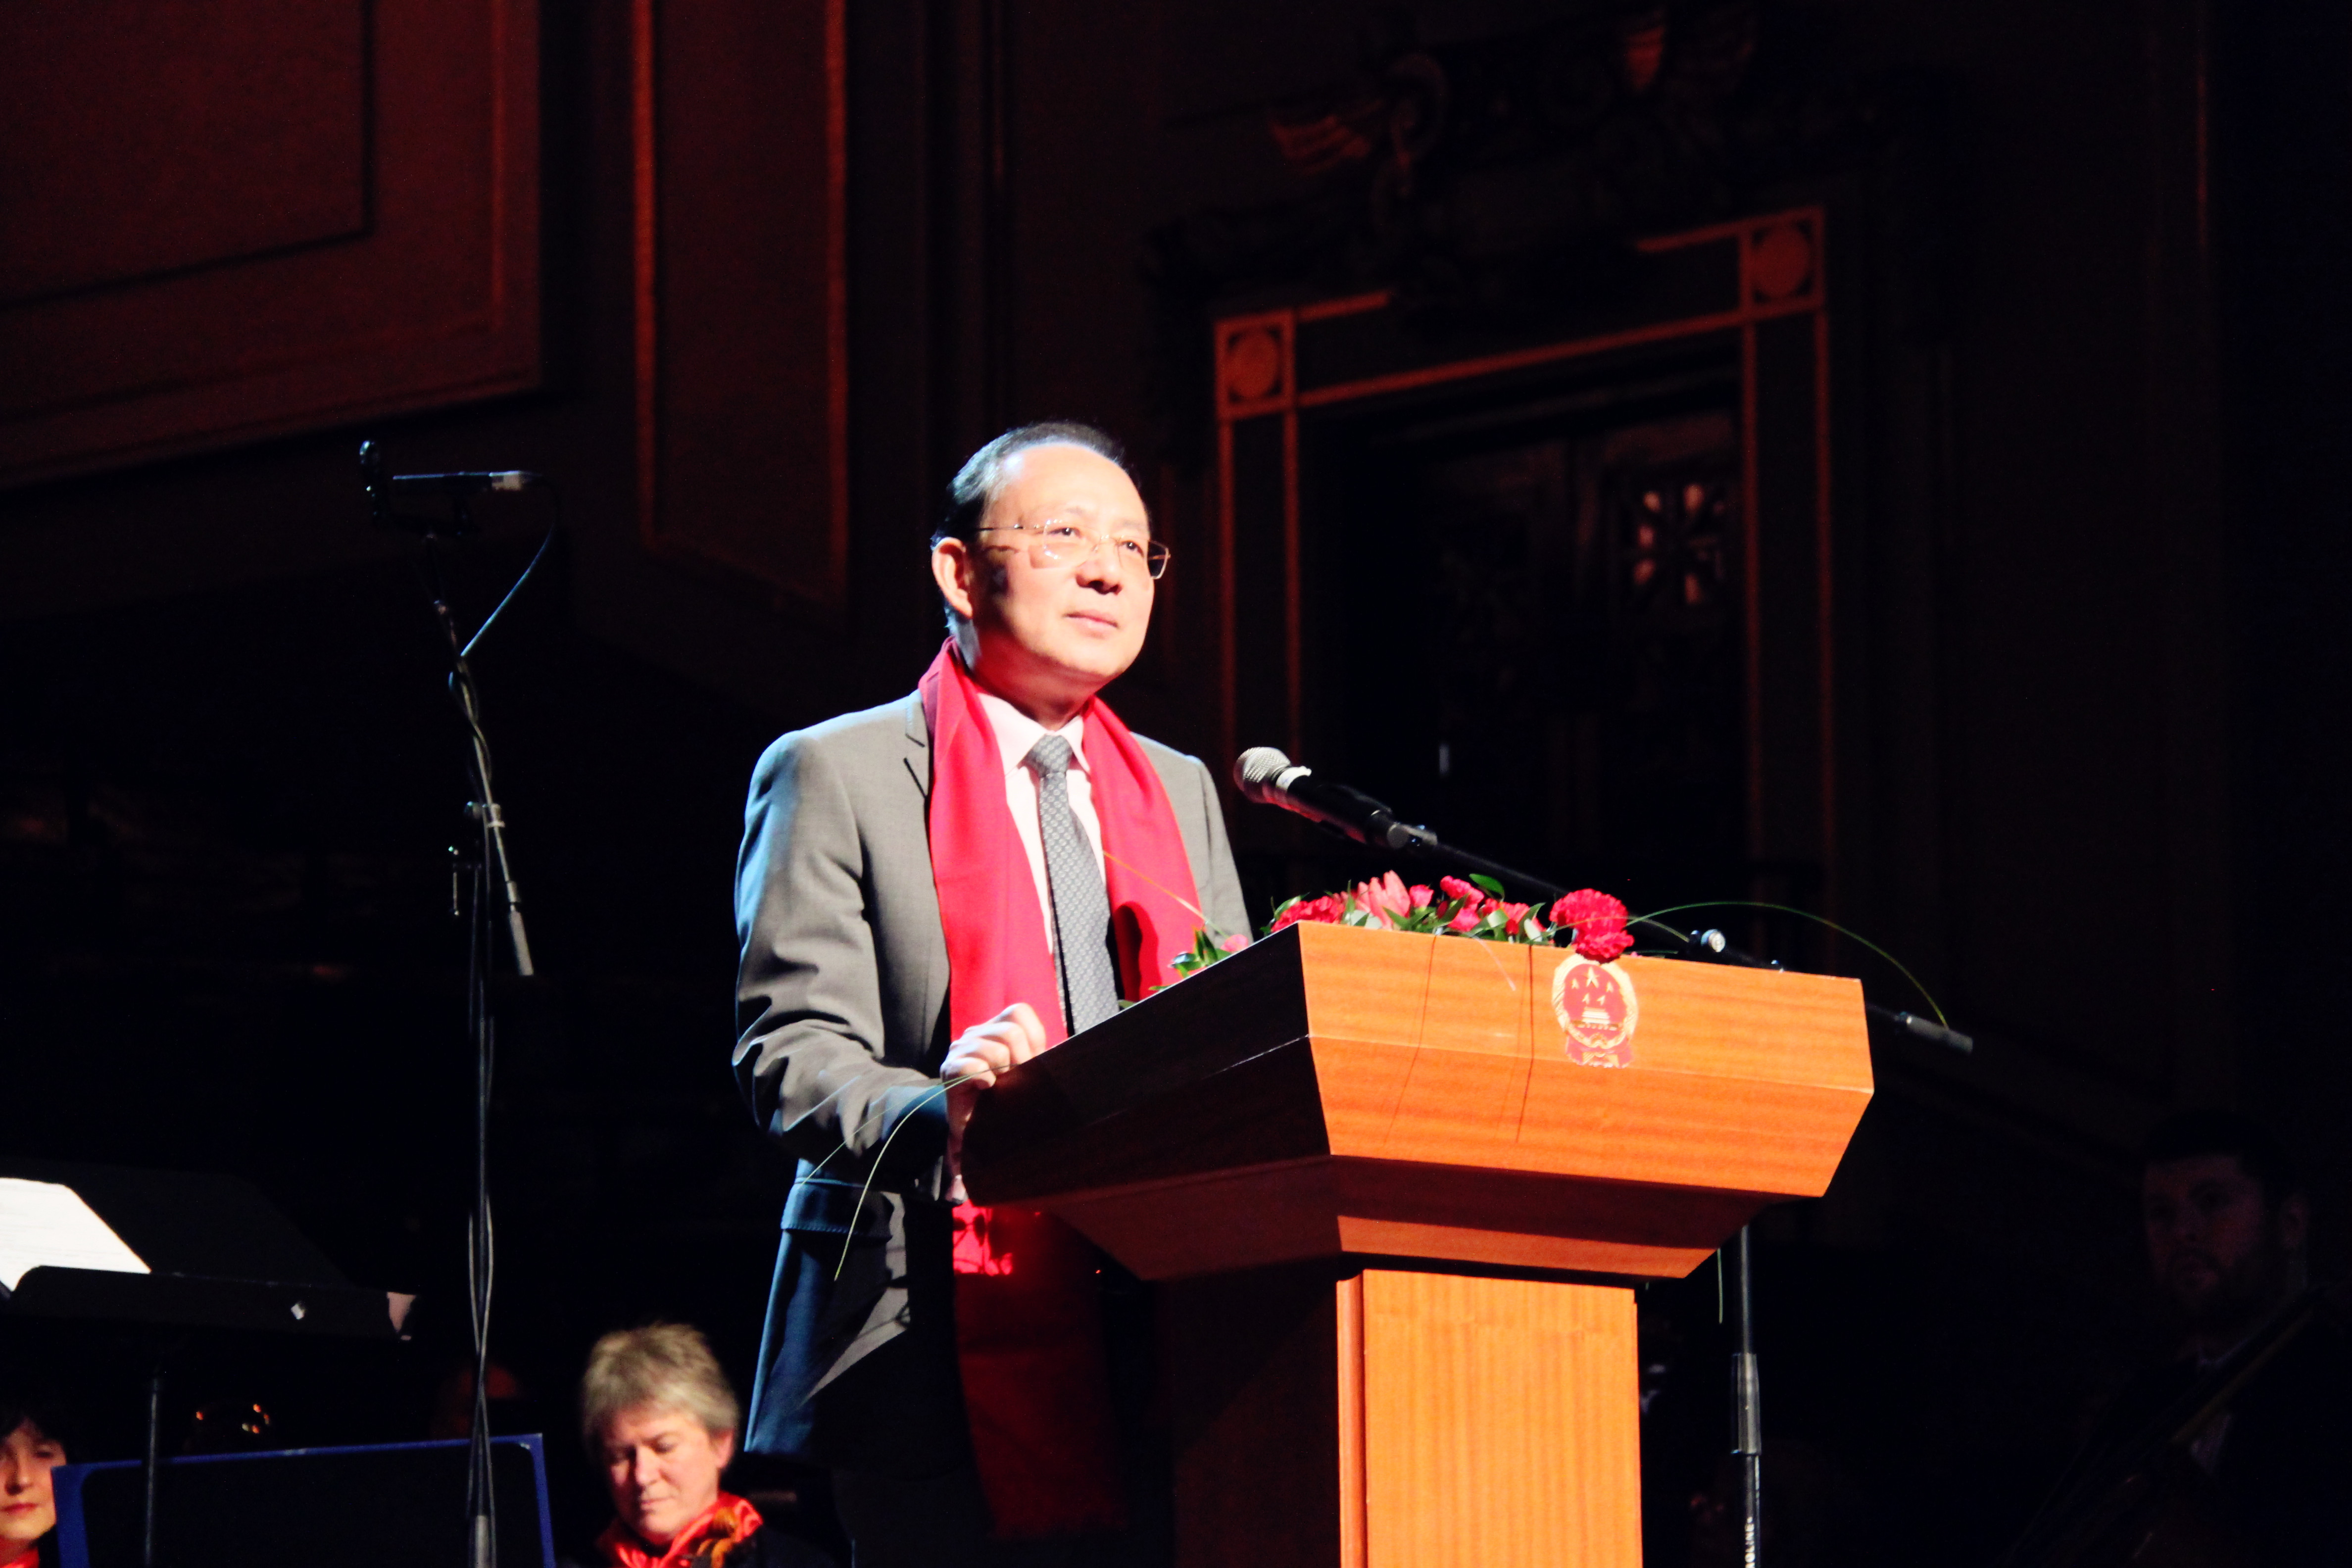 2018 chinese new year reception and concert held in edinburgh he said since the giant lantern of china show at the edinburgh zoo kicked off chinese new year malvernweather Image collections